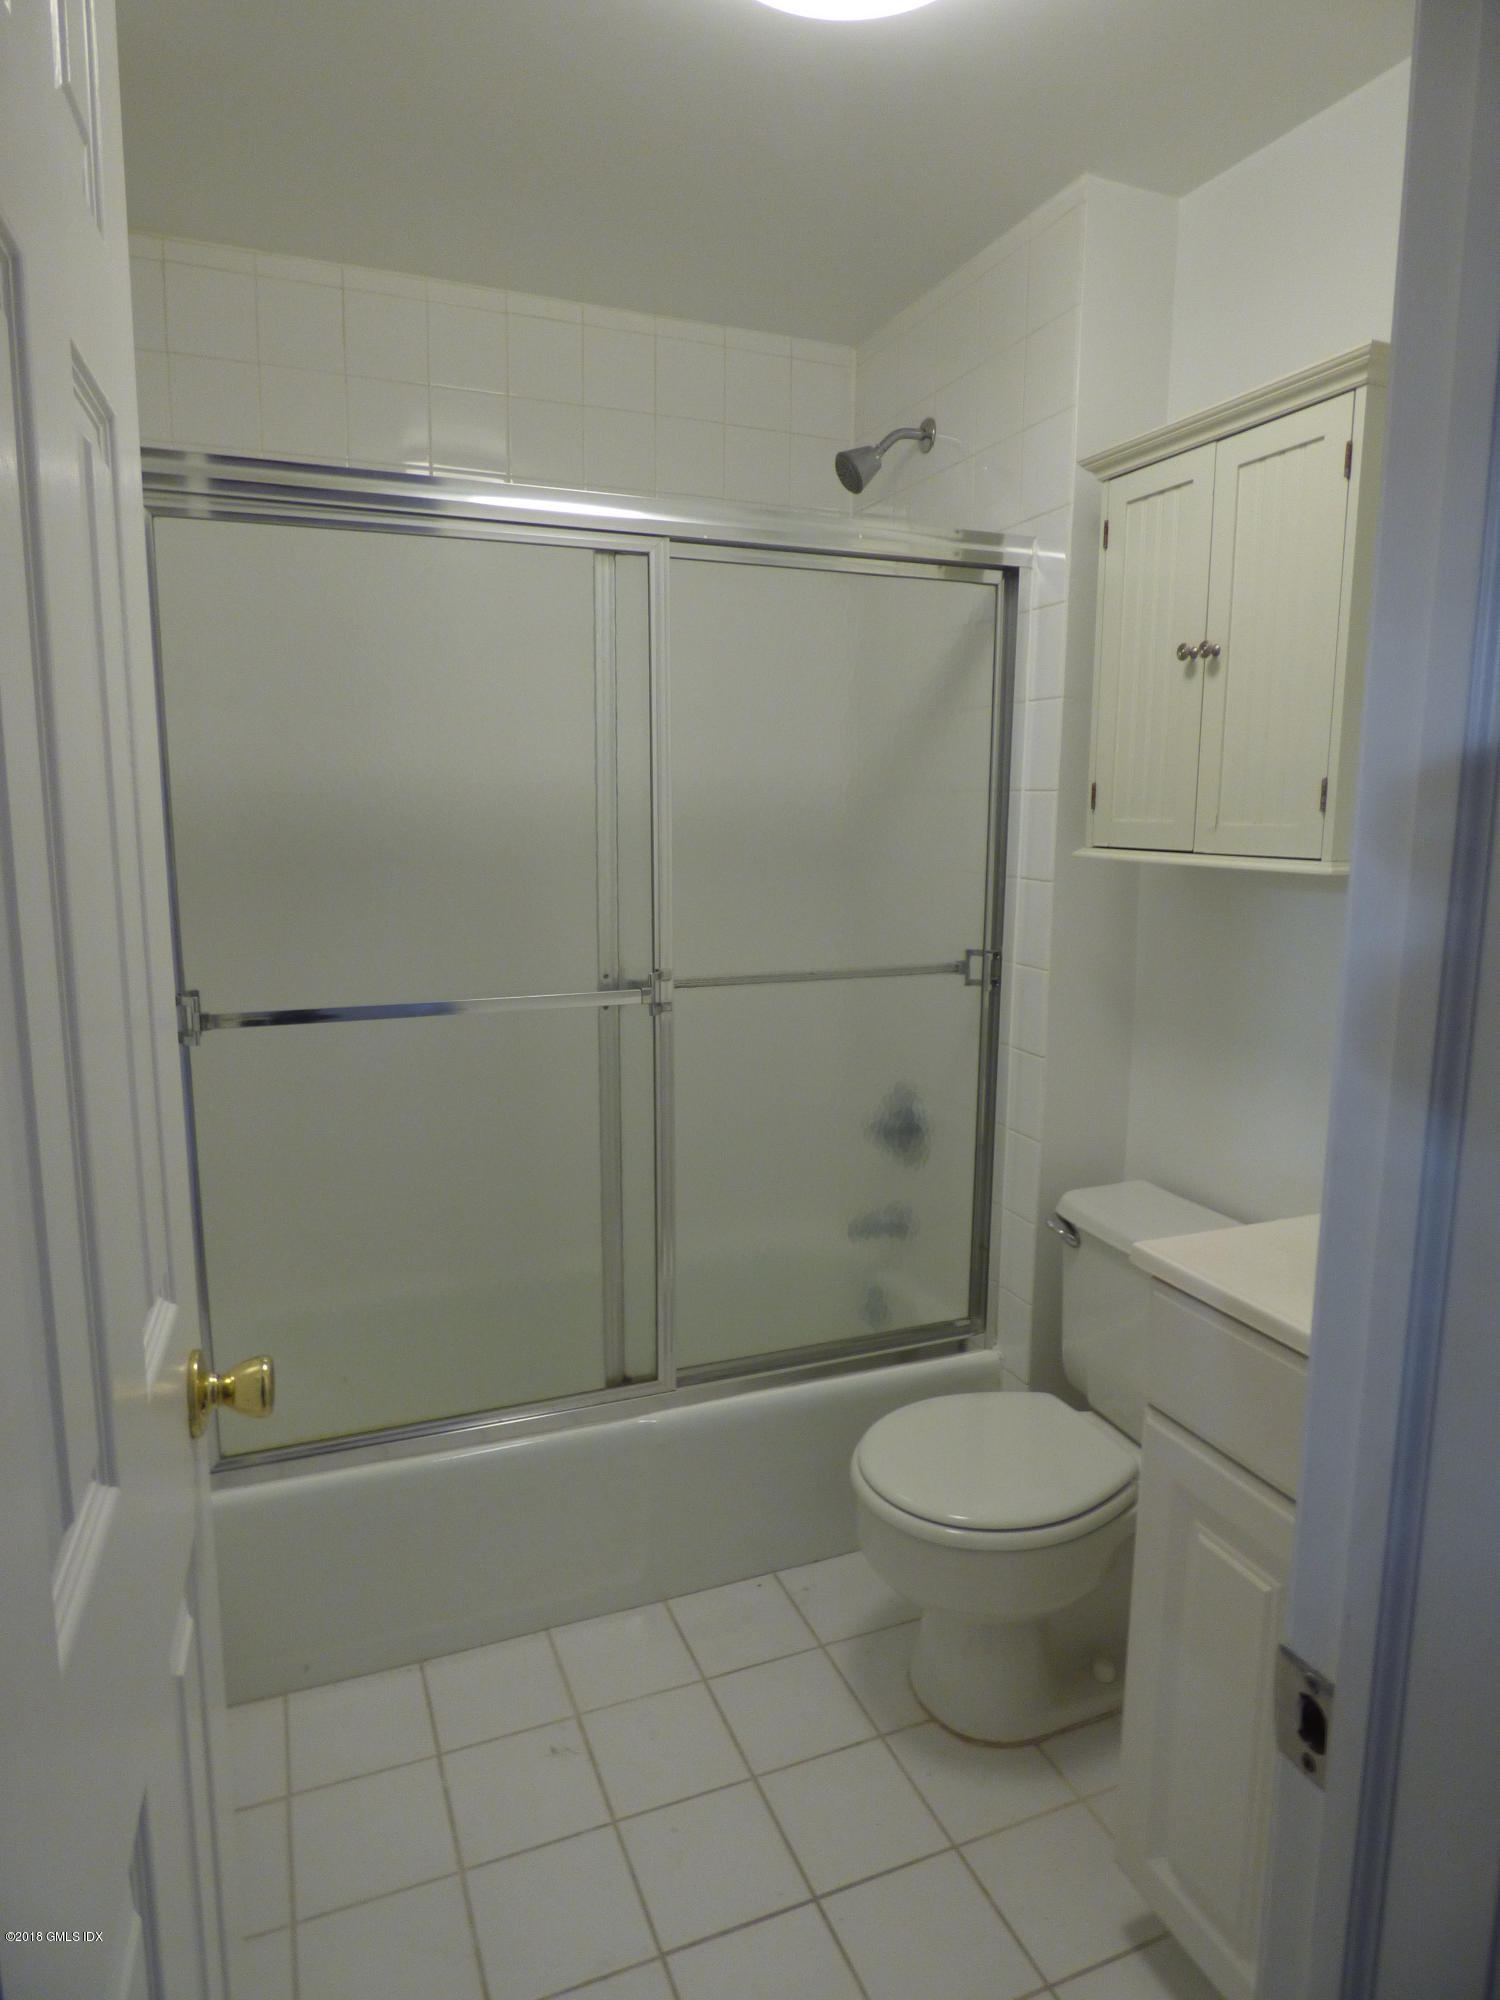 11 Old Field Point Road,Greenwich,Connecticut 06830,1 Bedroom Bedrooms,1 BathroomBathrooms,Apartment,Old Field Point,105060